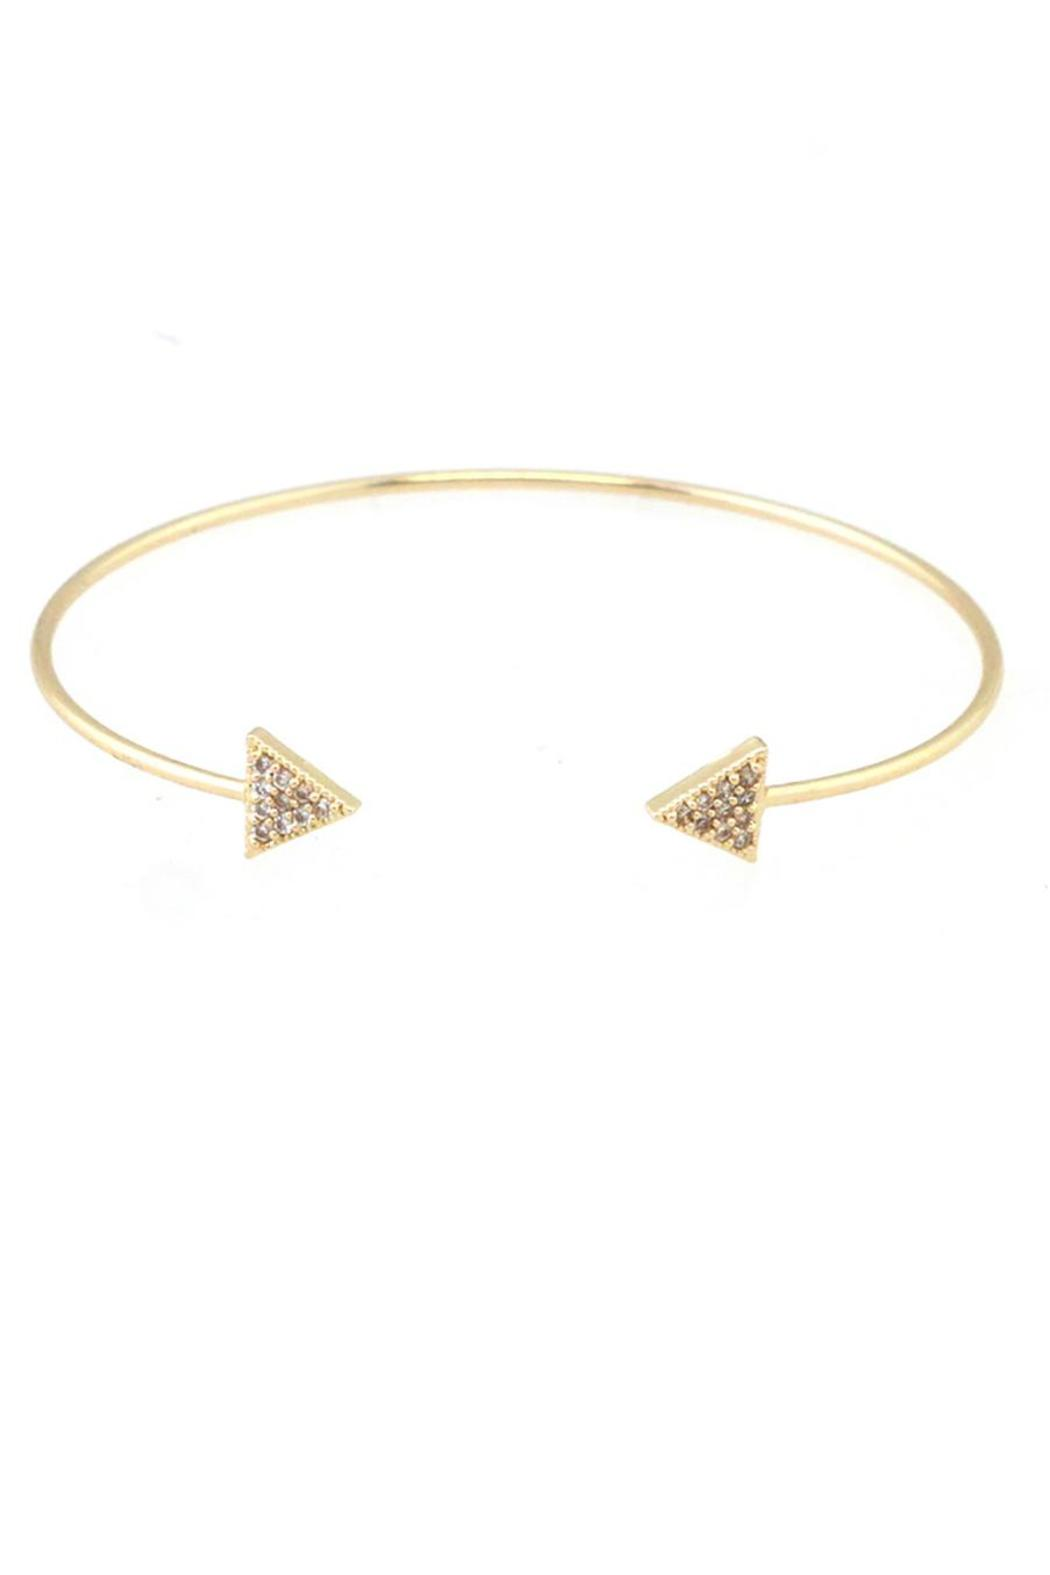 U.S. Jewlery House Arrow Cuff Bracelet - Main Image